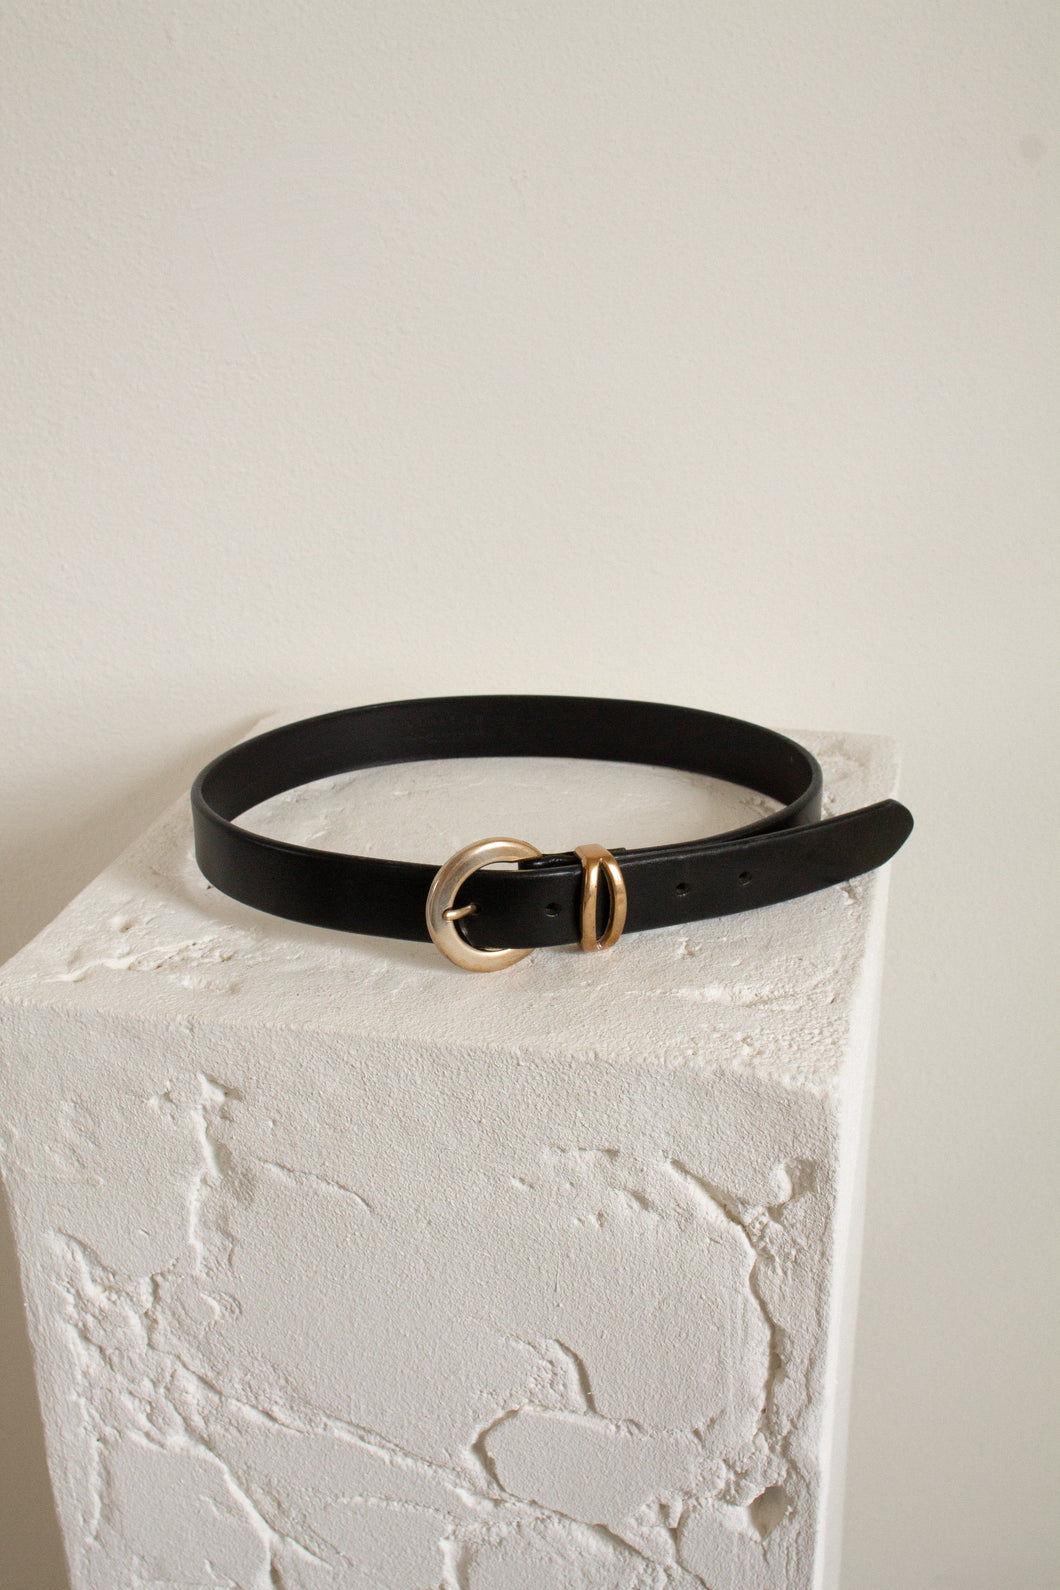 Vintage black leather and gold belt // 27.5-31.5